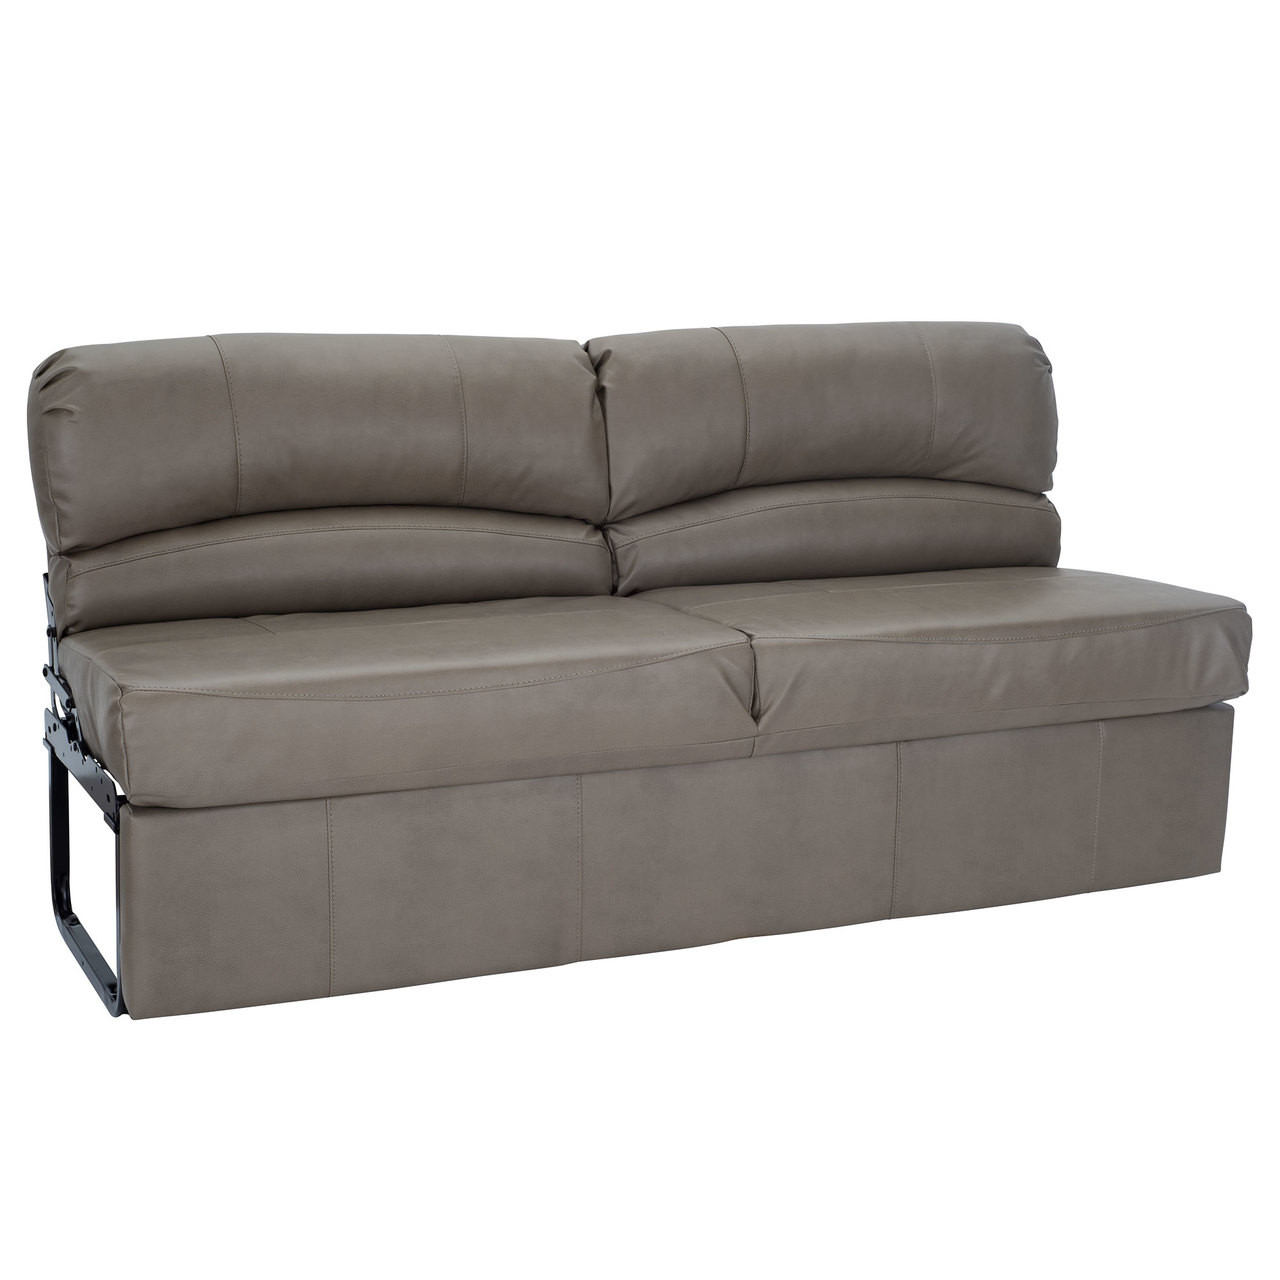 Groovy Recpro Charles 68 Rv Jackknife Sleeper Sofa With Optional Pabps2019 Chair Design Images Pabps2019Com